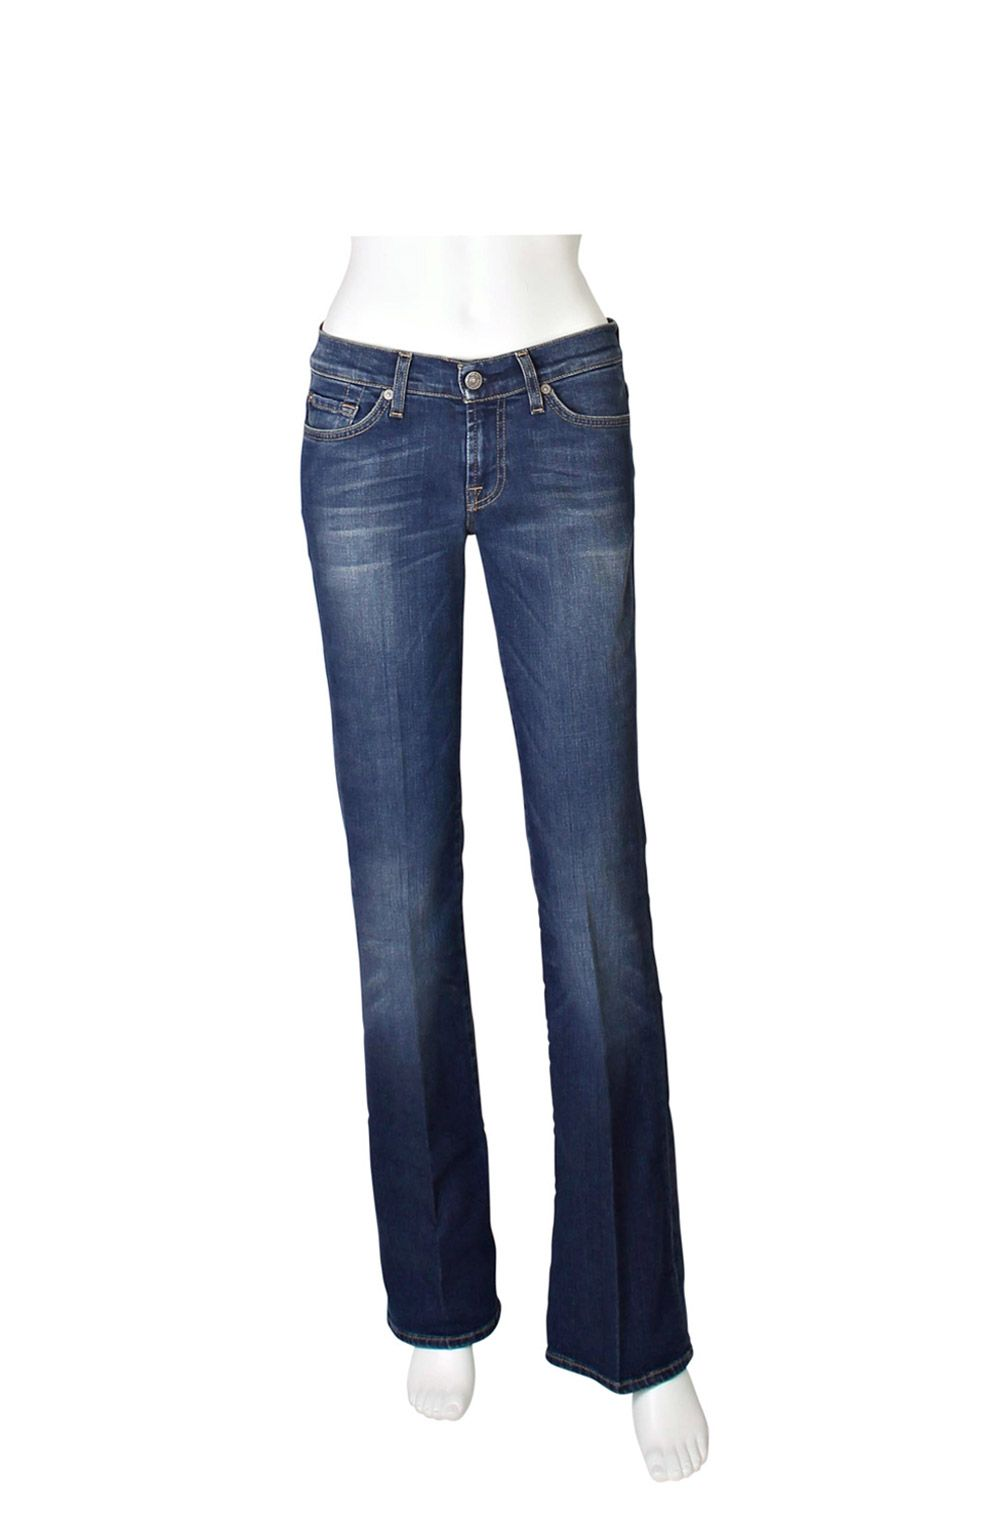 These jeans define premium denim! They are so soft and comfortable to wear, they are extremely flattering as the bootcut shape elongates your leg and flatters the thigh and the colour is a lovely mid blue which goes with everything. Plus they will take you through all seasons, wear chunky knits in winter and light tunic tops in the warmer weather - perfect!